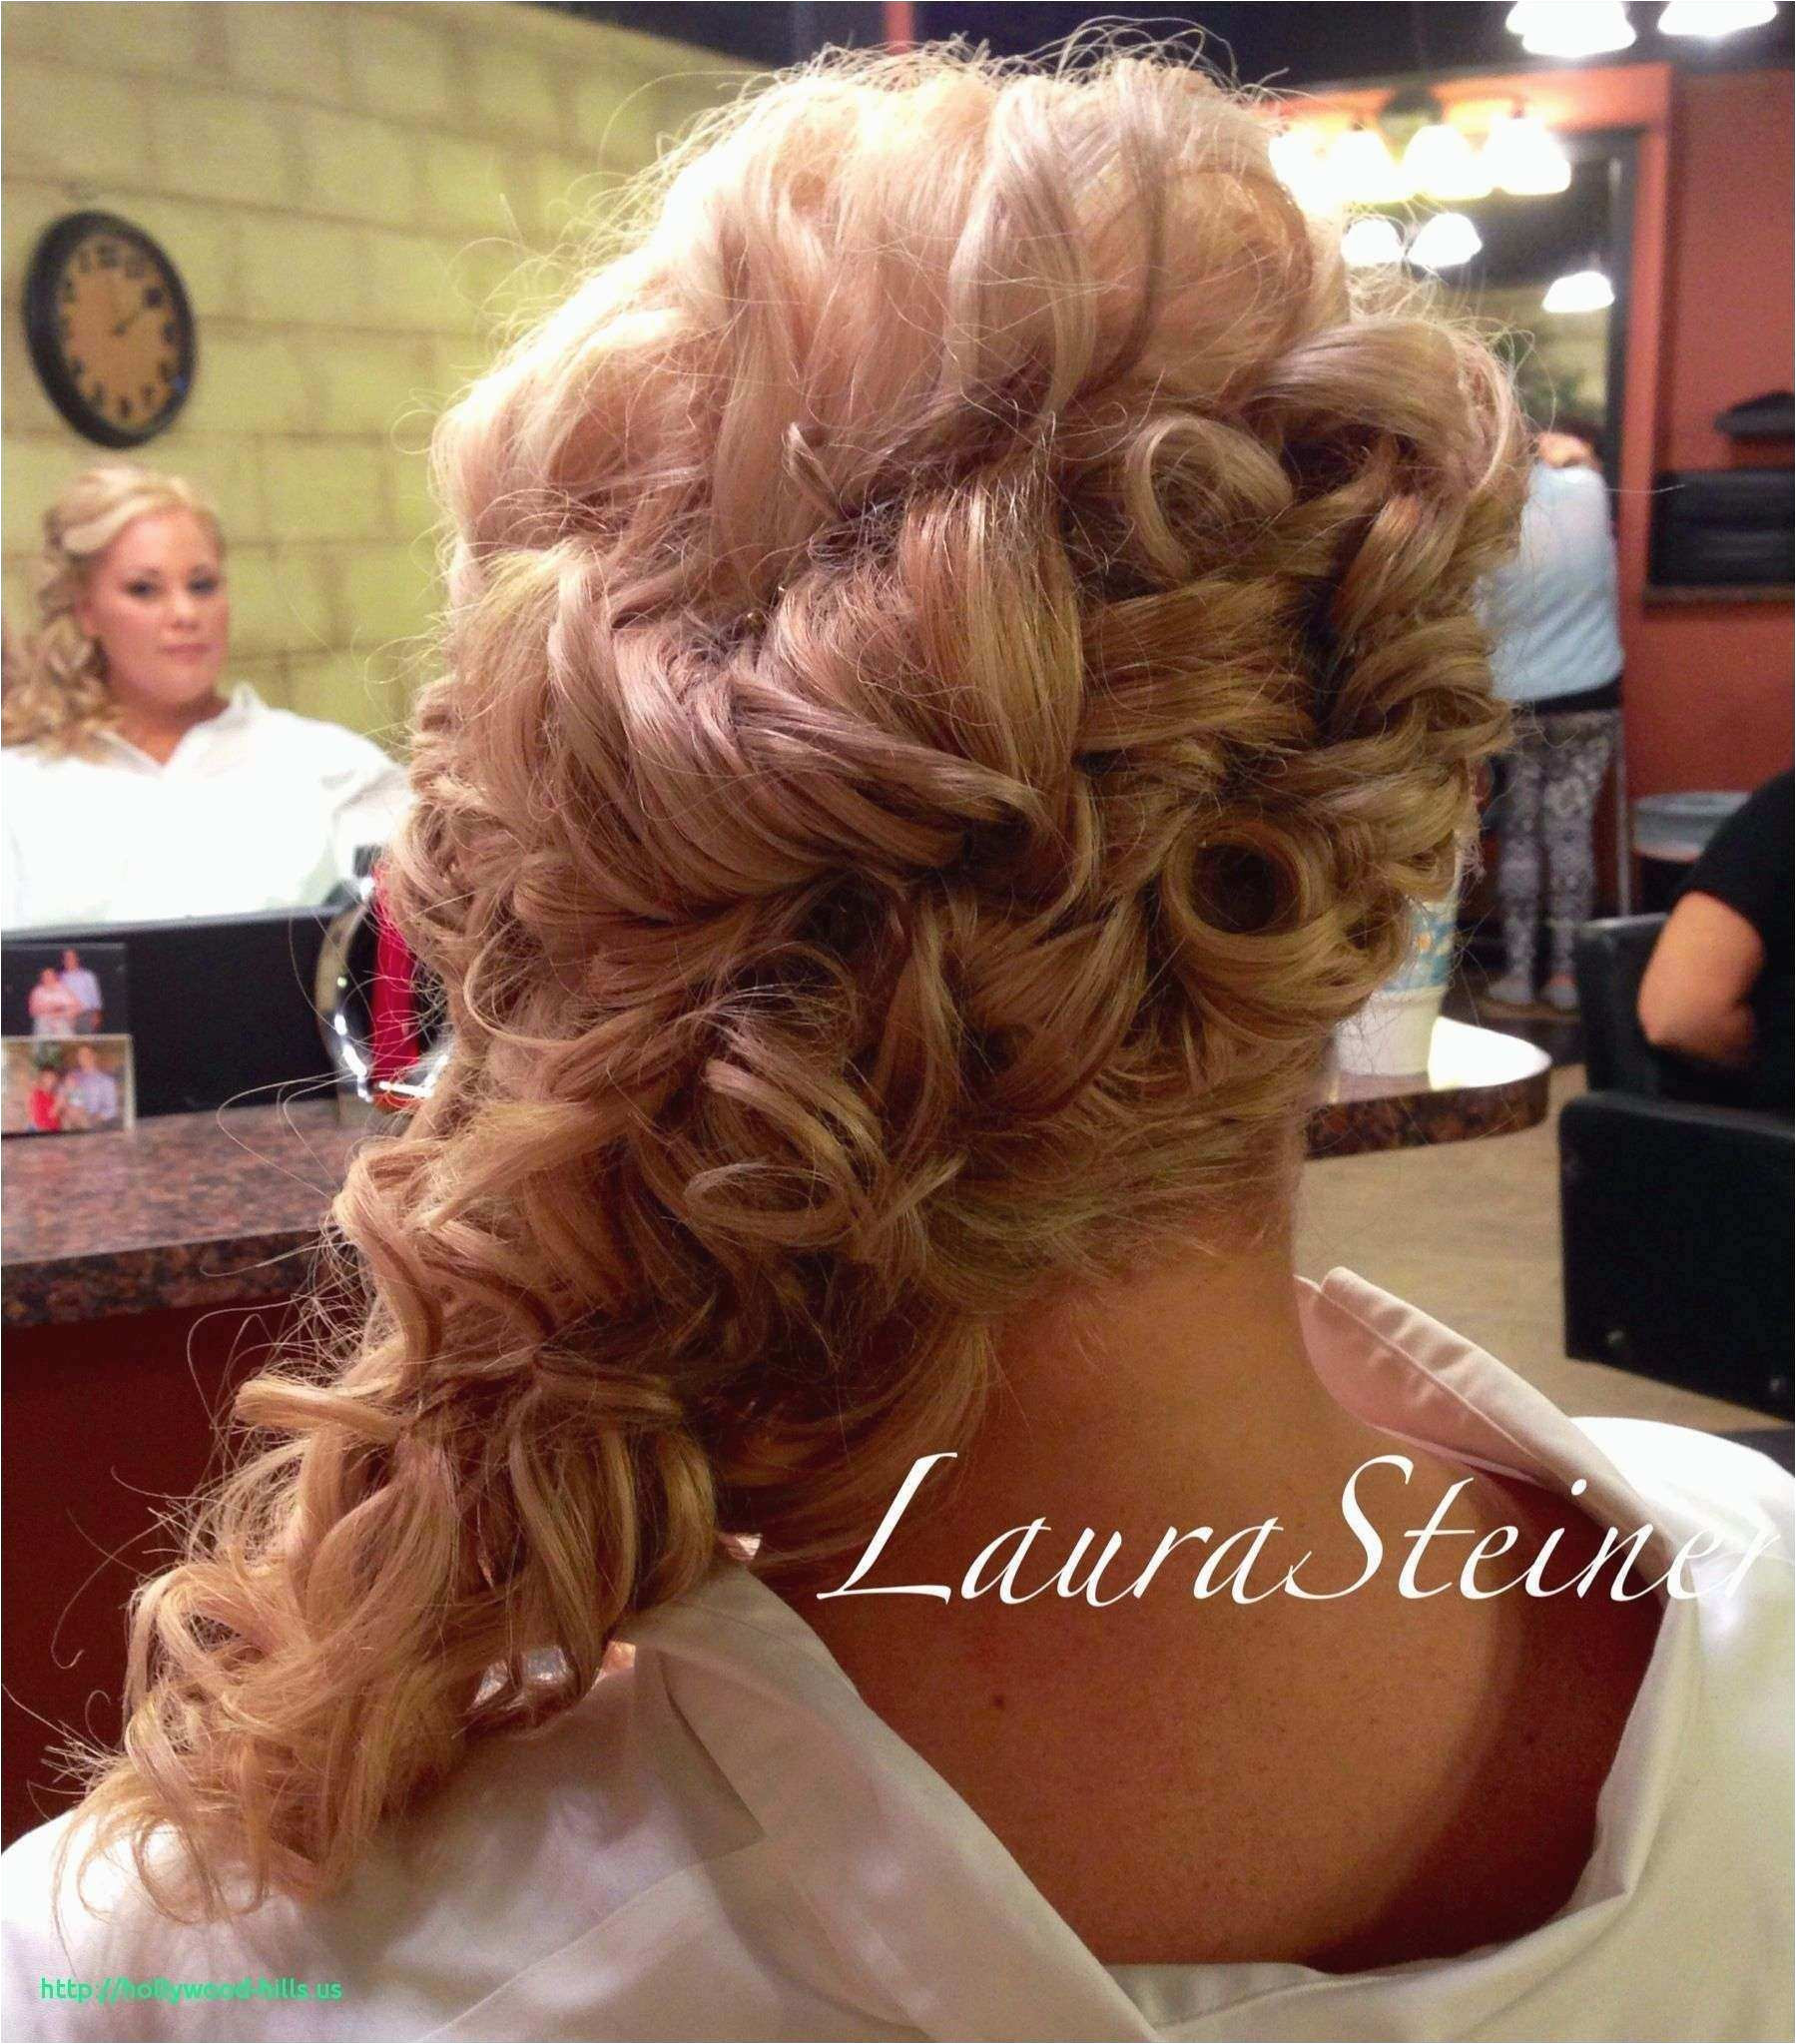 Formal Hairstyle for Girls Lovely formal Hairstyles with Braids and Curls